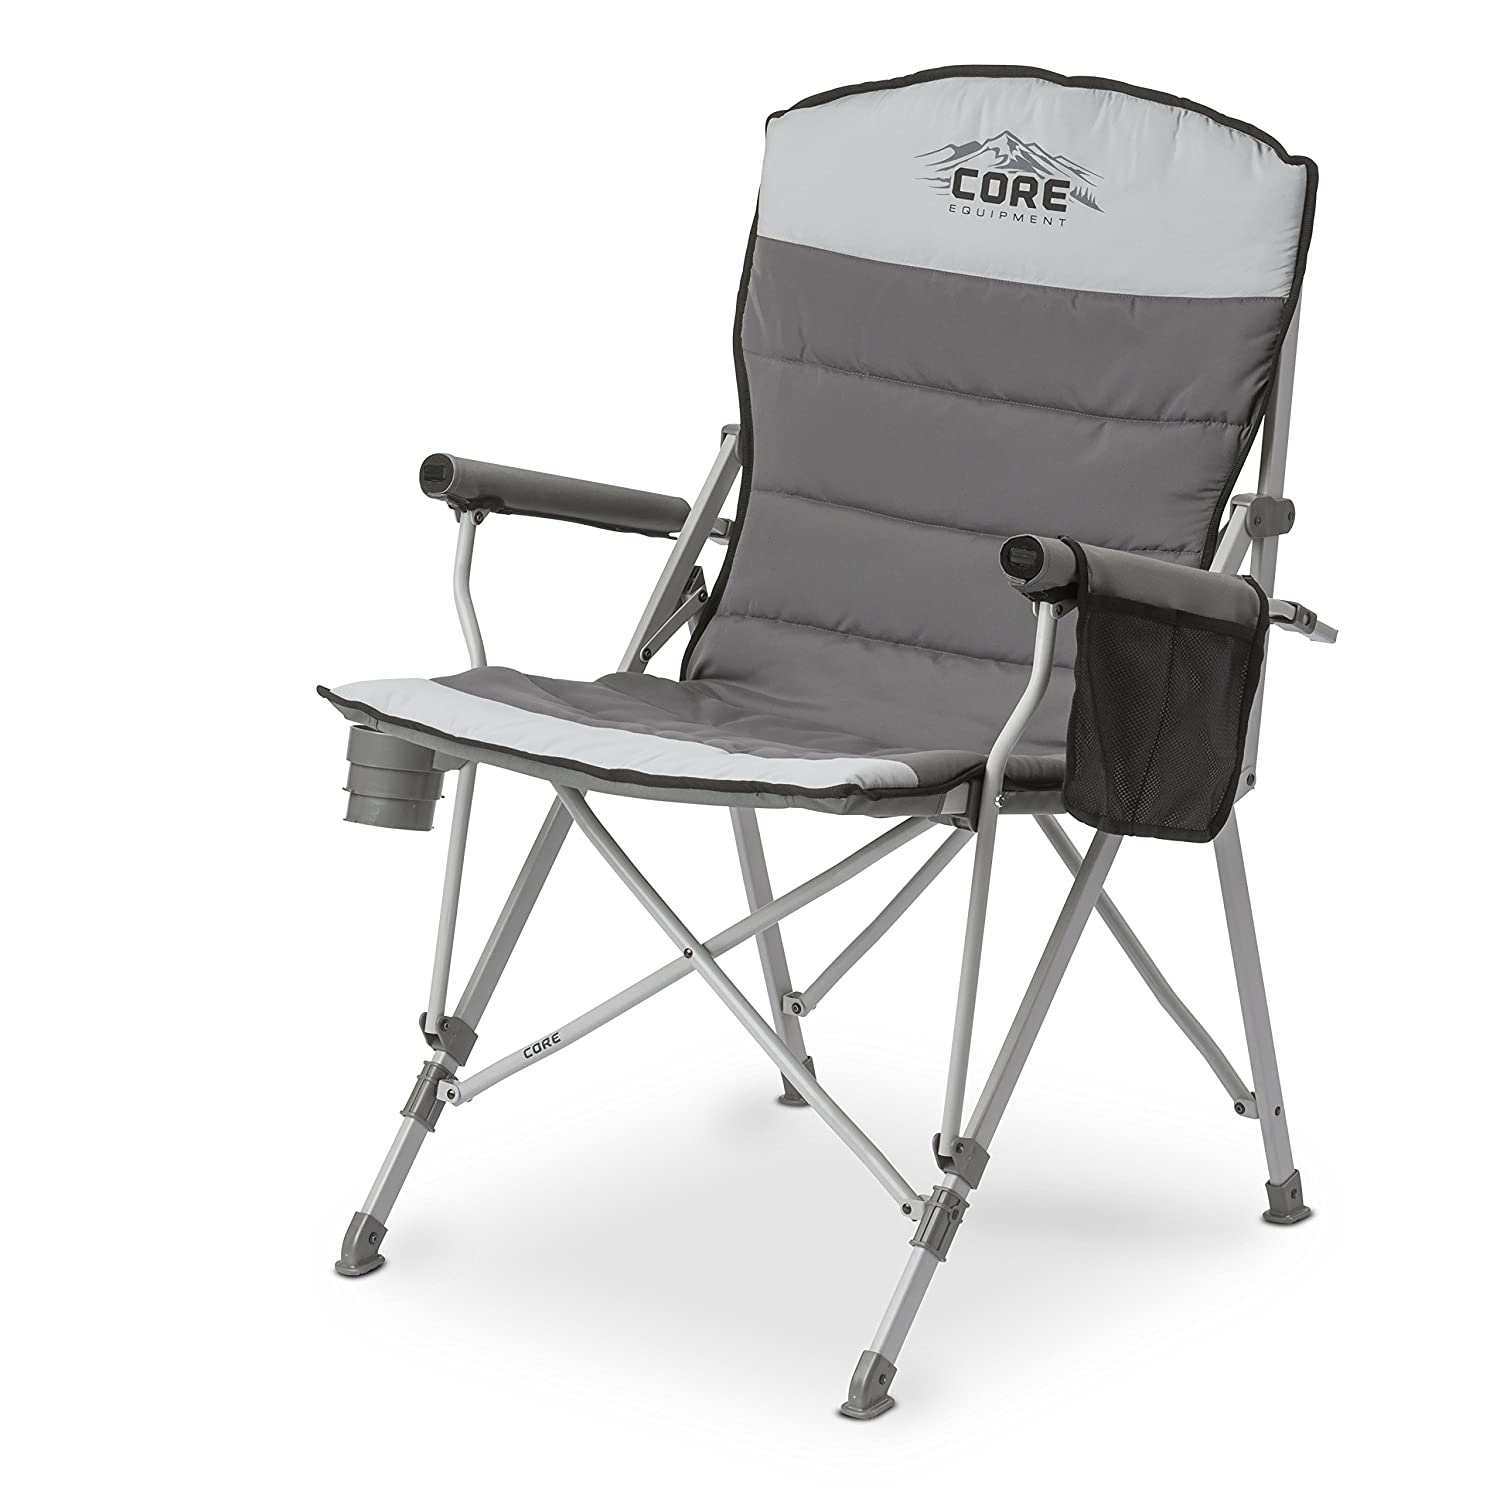 Perfect Amazon.com : CORE Equipment Folding Padded Hard Arm Chair With Carry Bag,  Gray : Sports U0026 Outdoors